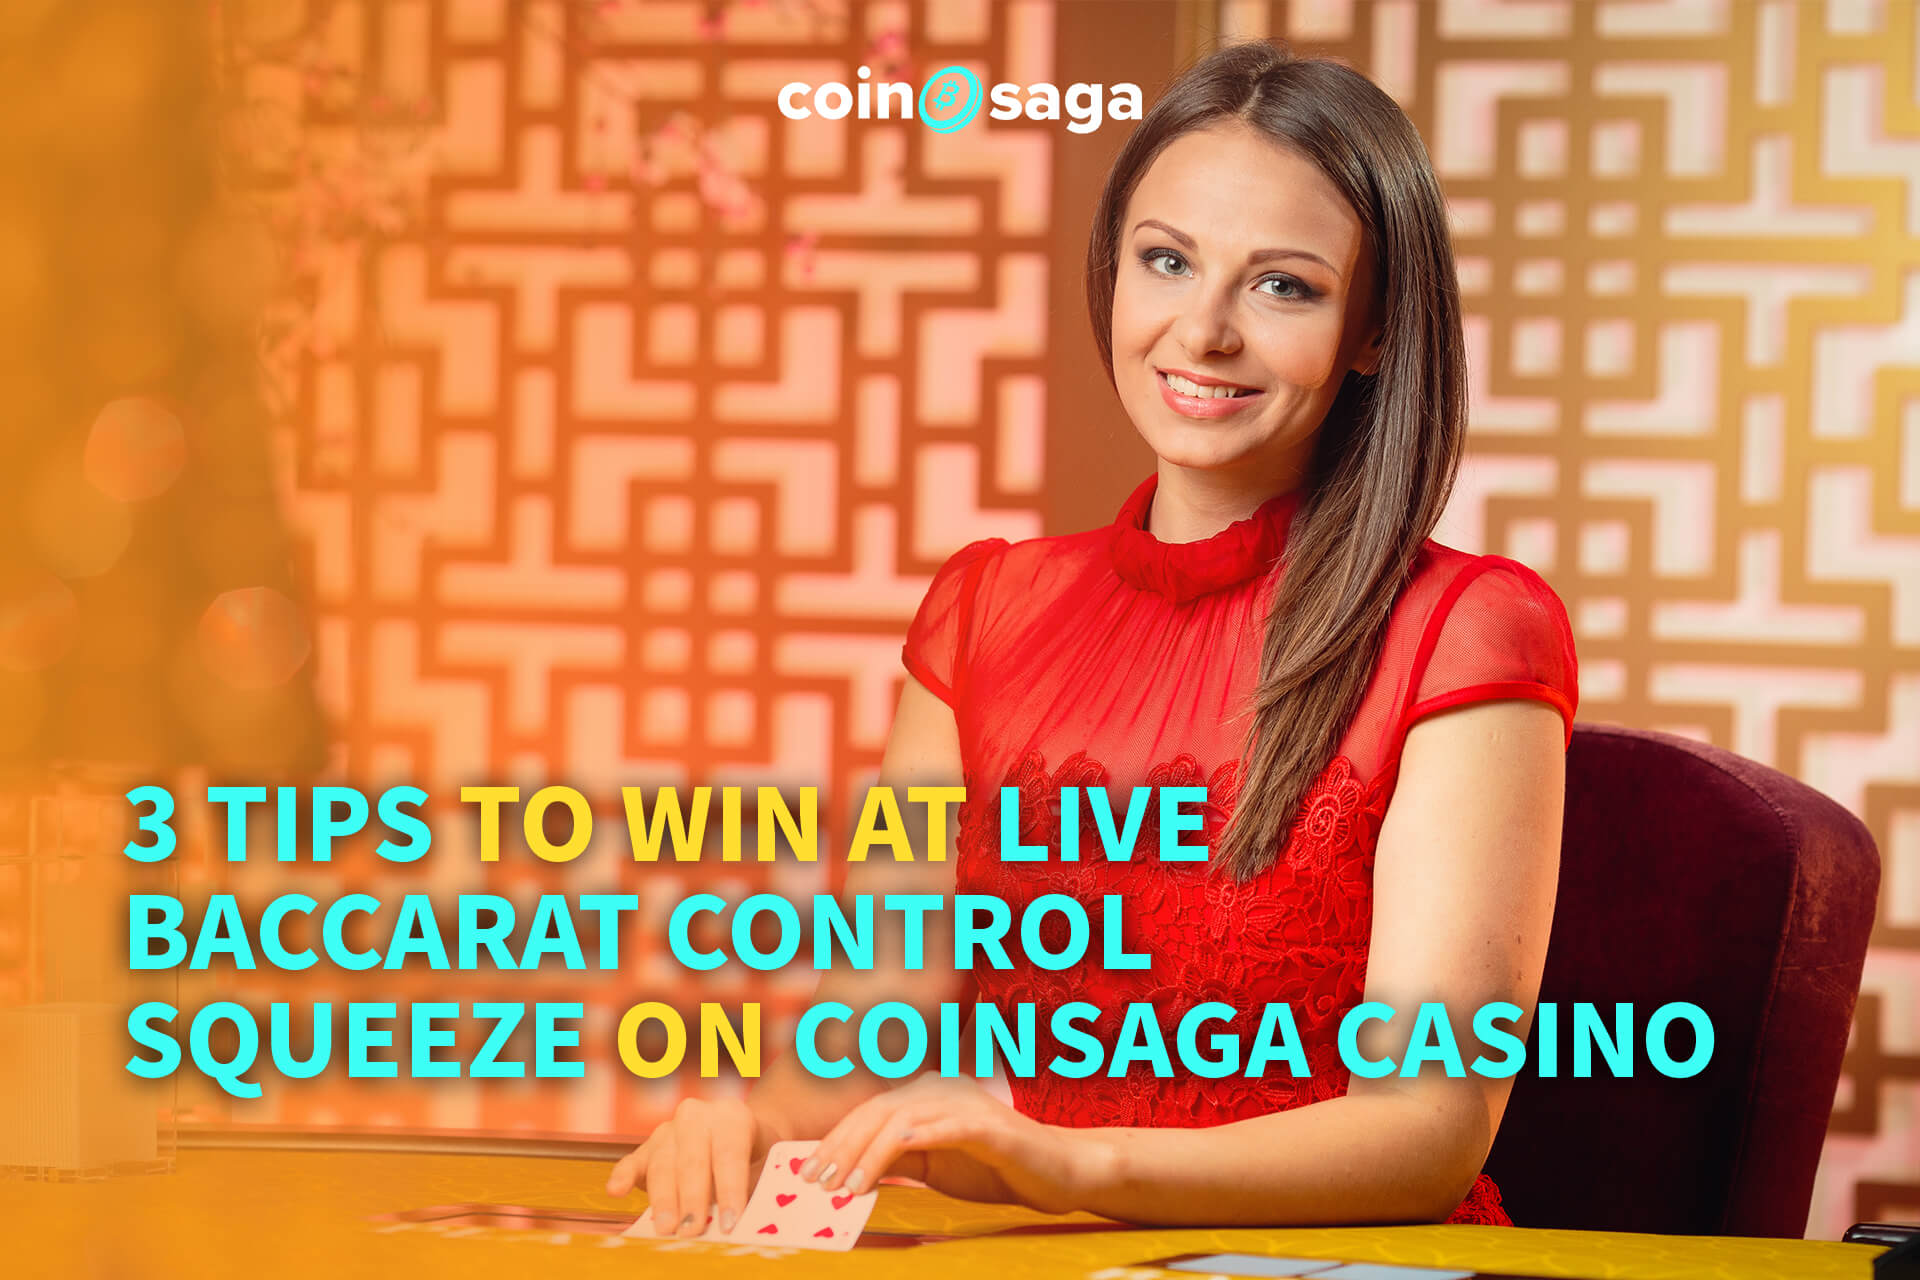 Live Baccarat Control Squeeze Tips